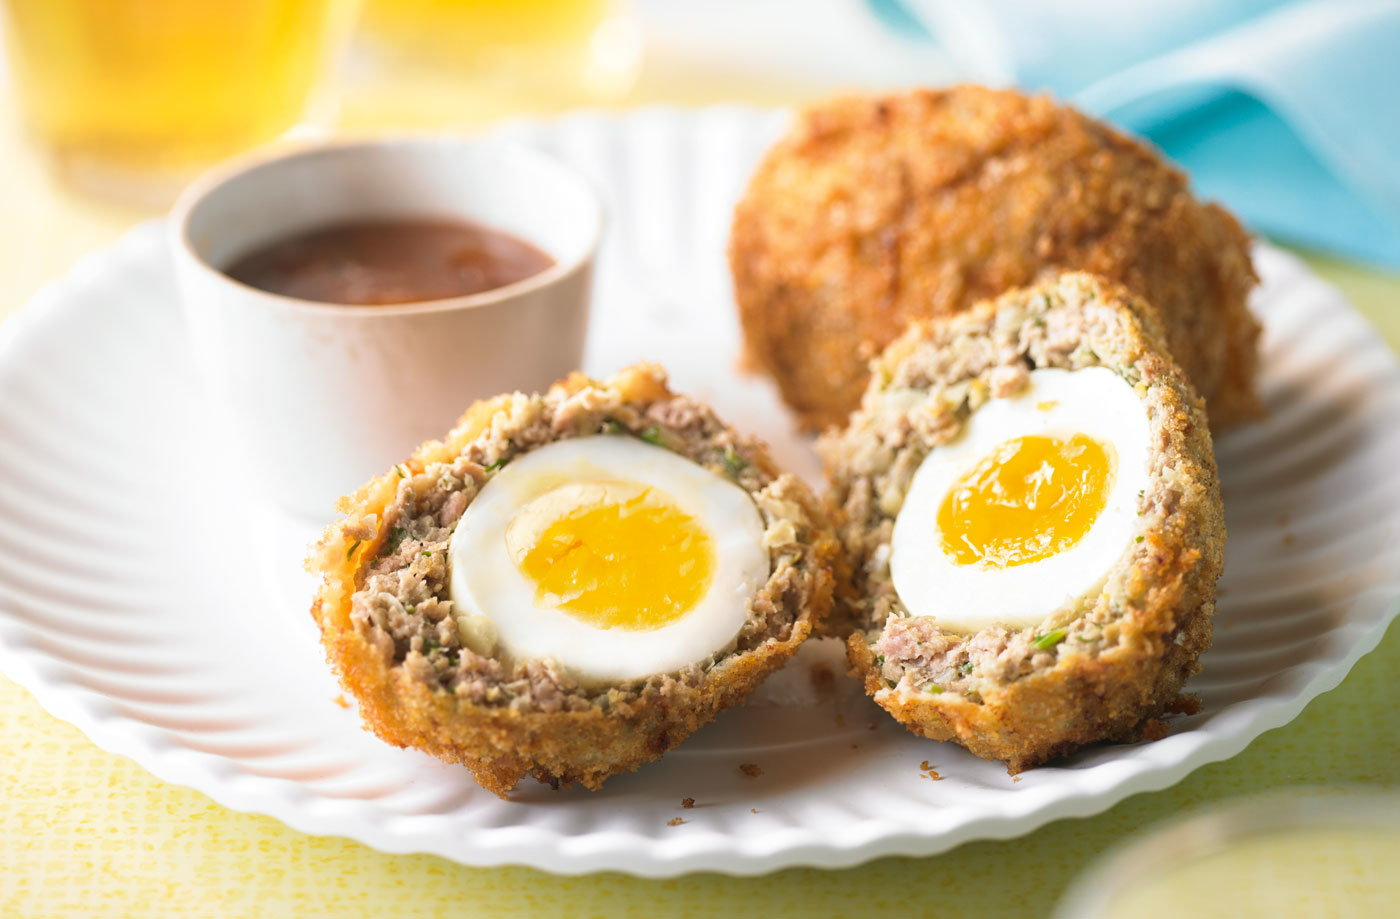 Turkey & cumin Scotch eggs recipe